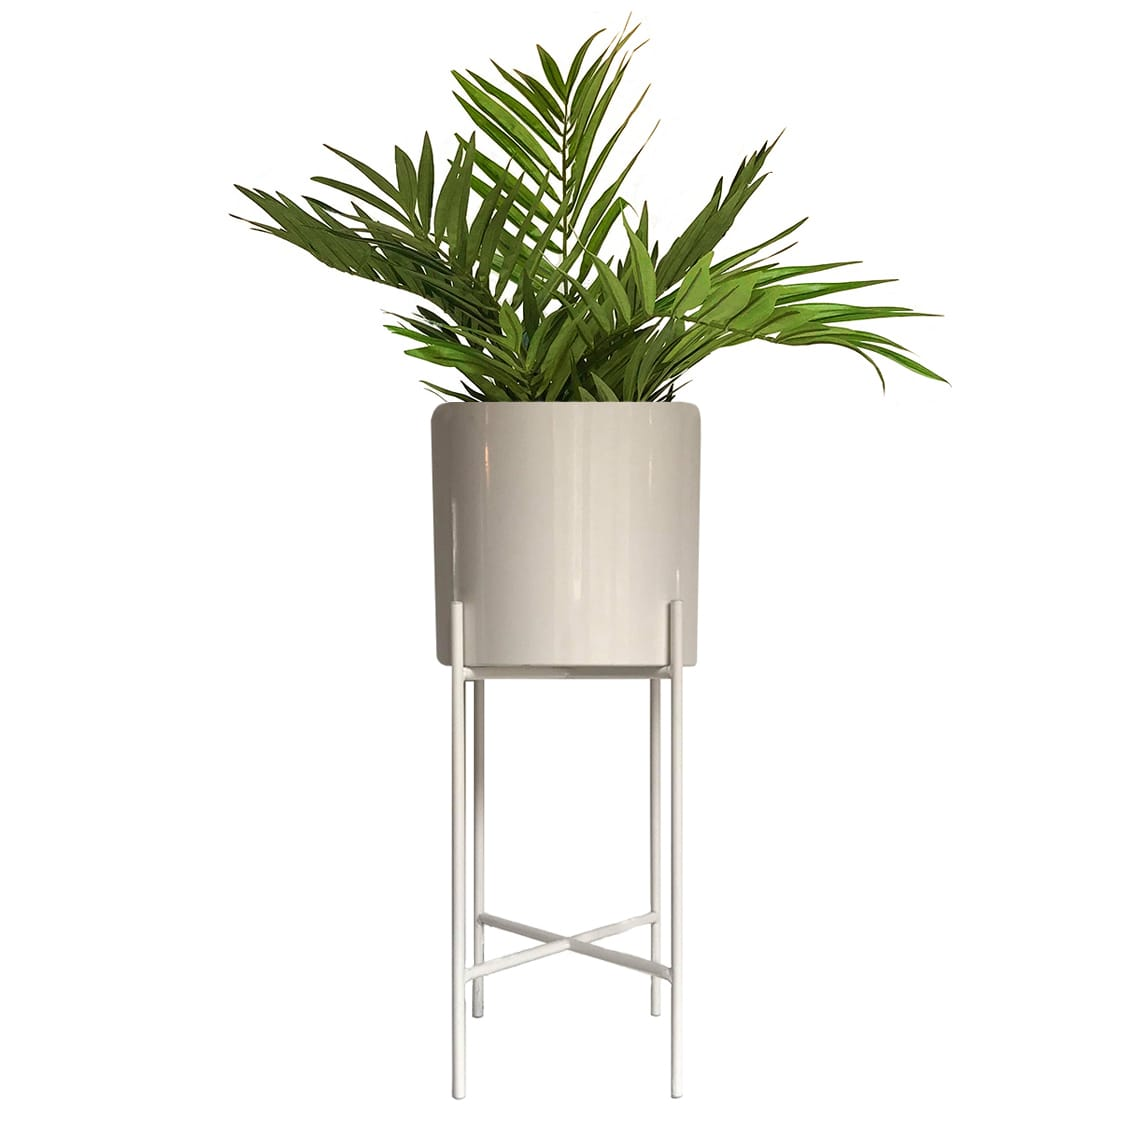 Hubsch Large White Metal Planter